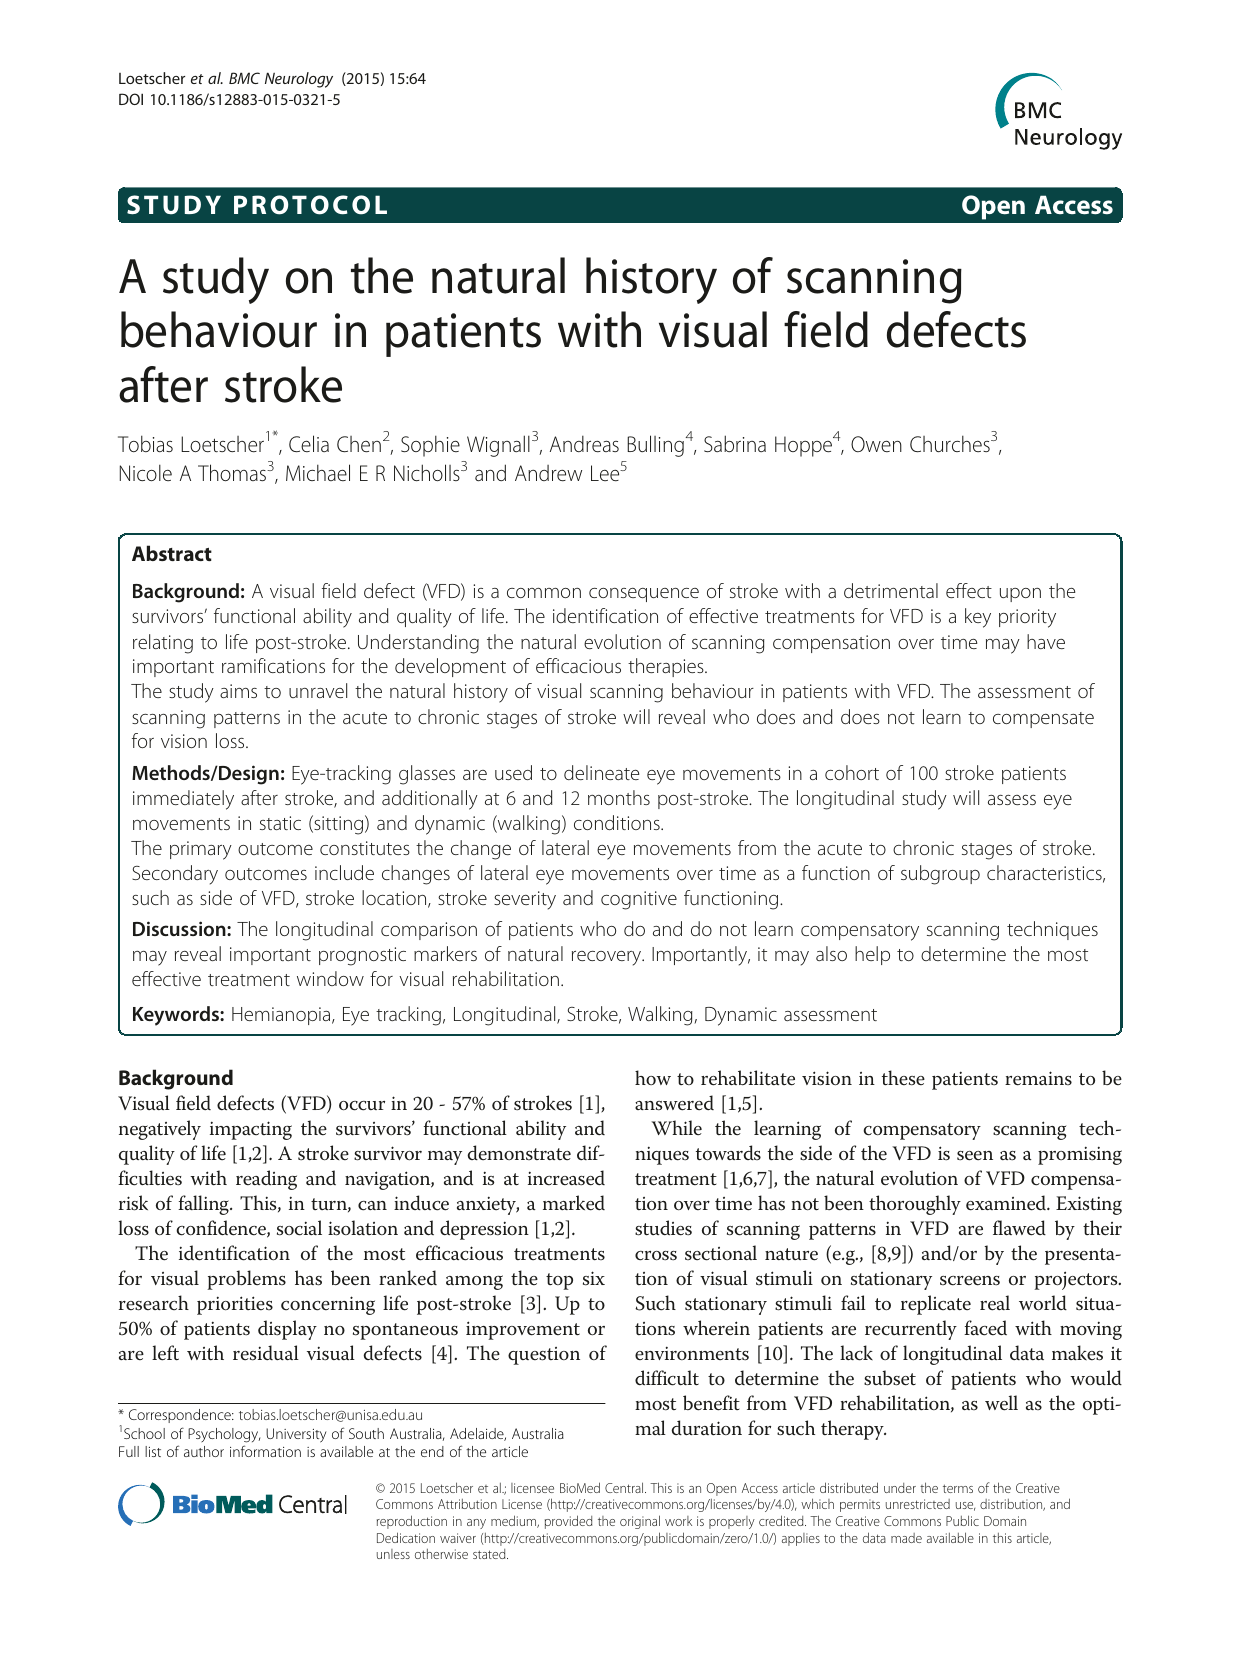 A study on the natural history of scanning behaviour in patients with visual field defects after stroke